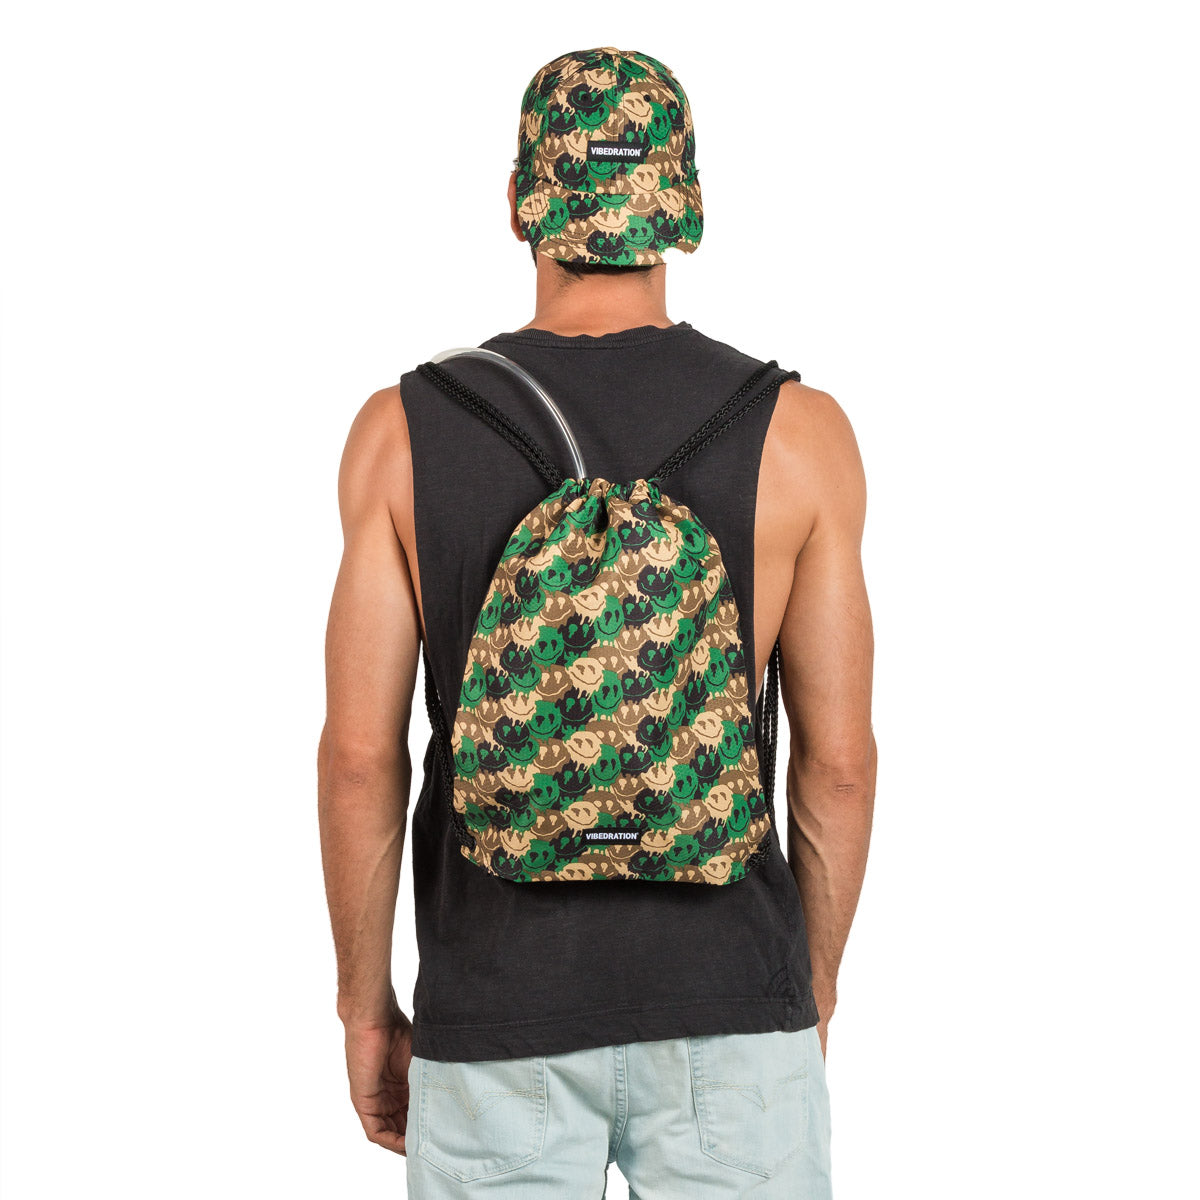 Male wearing Camo Printed Drawstring Bag